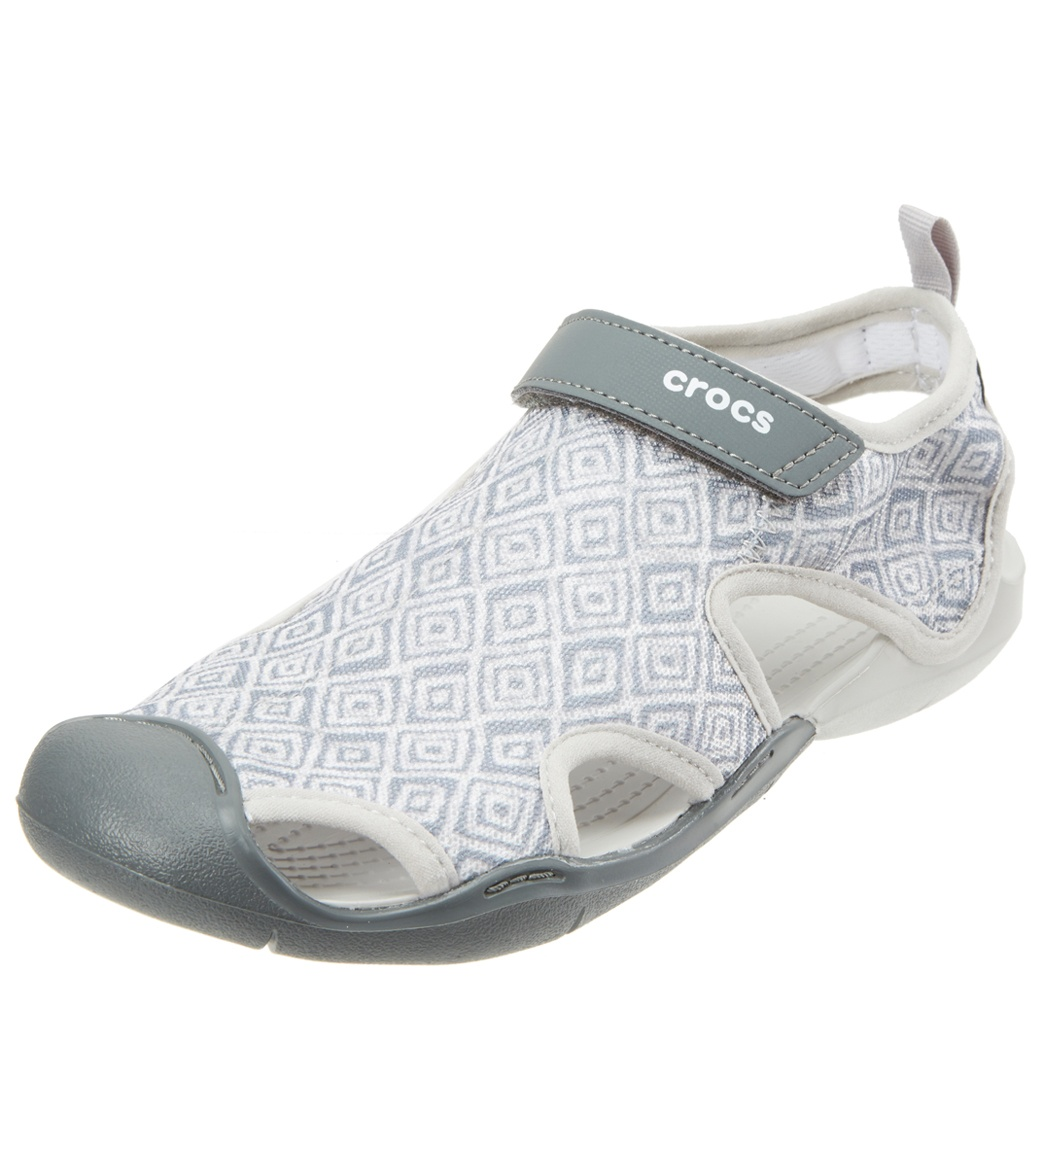 ab6c3c01261b00 Crocs Women s Swiftwater Graphic Mesh Sandal at SwimOutlet.com - Free  Shipping